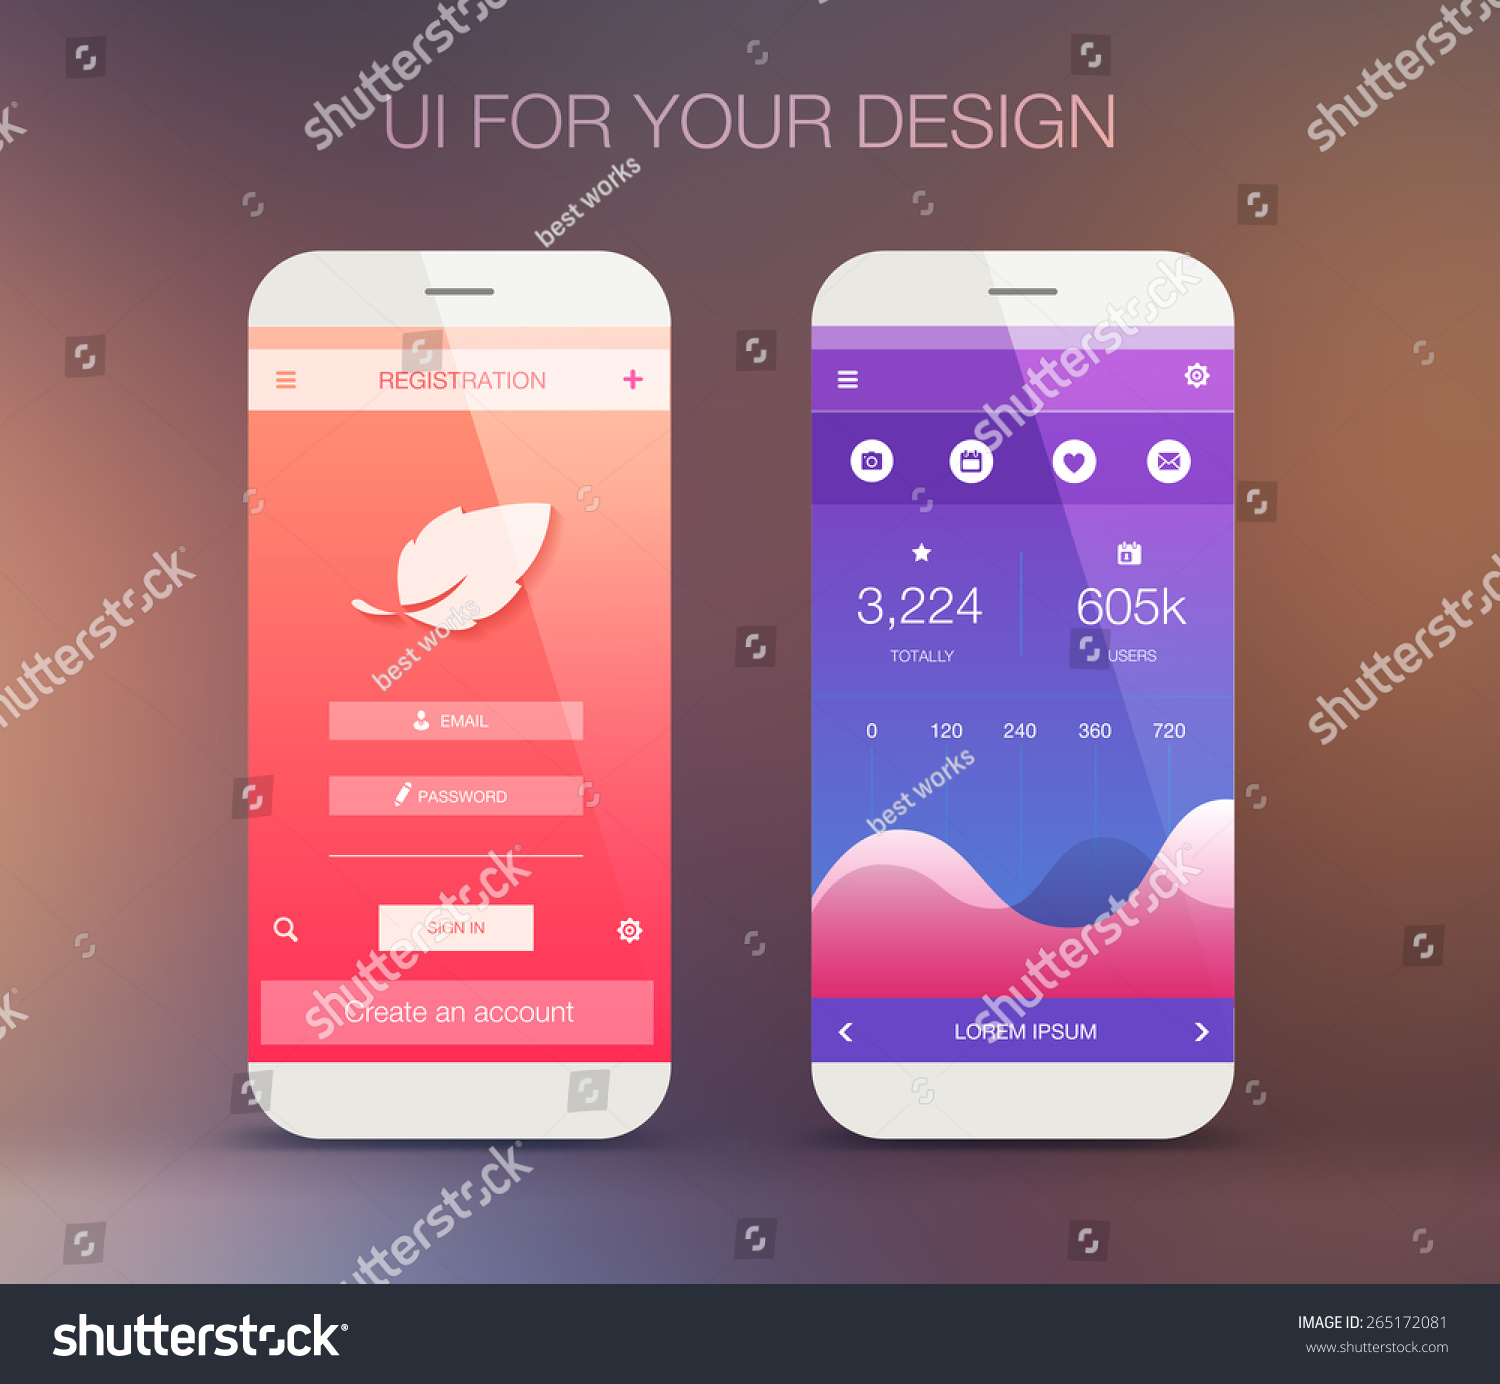 user interface design for mobile applications